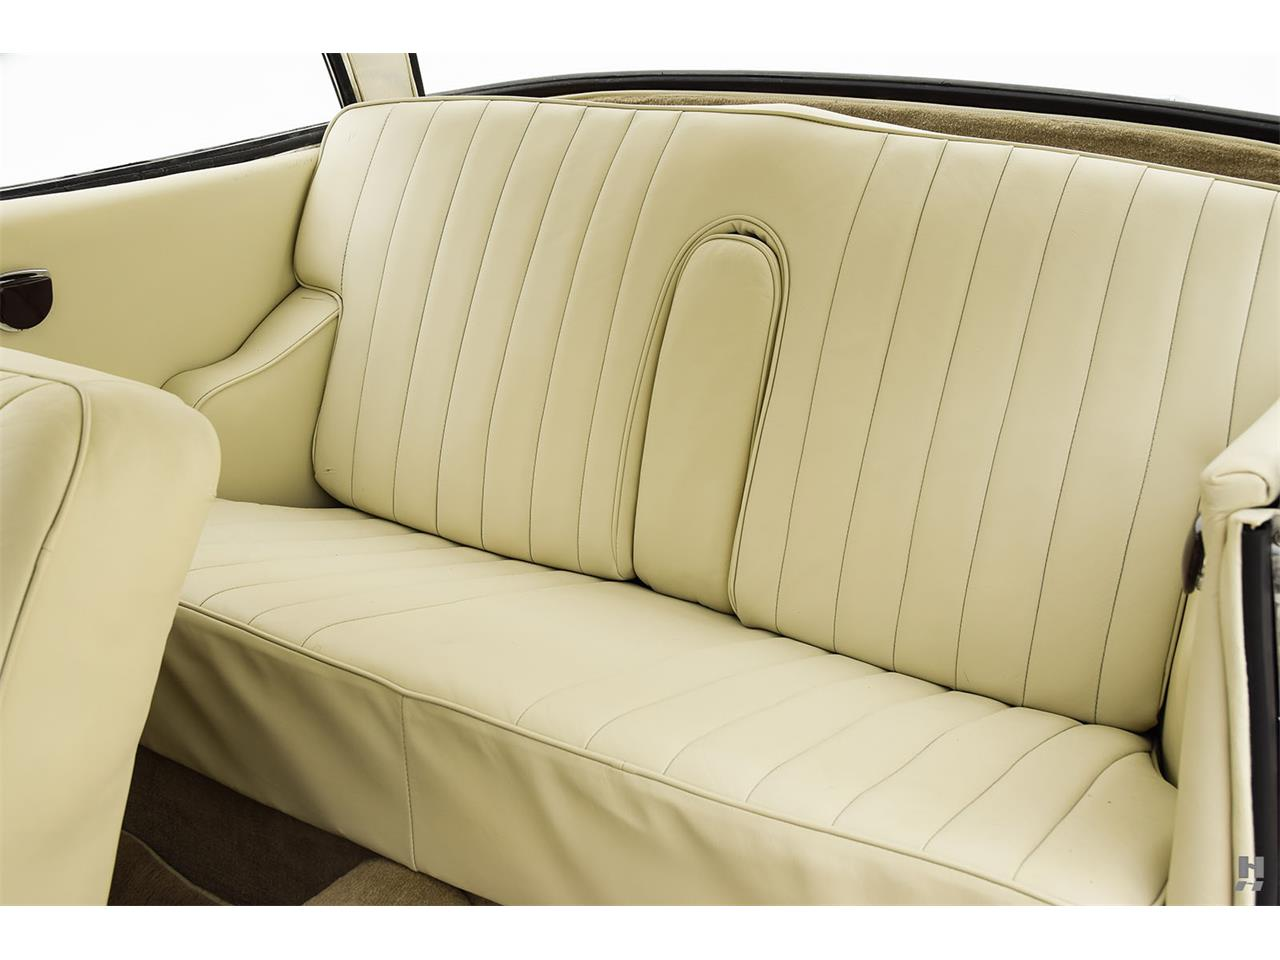 Large Picture of 1961 TD21 located in Missouri Offered by Hyman Ltd. Classic Cars - LEAR